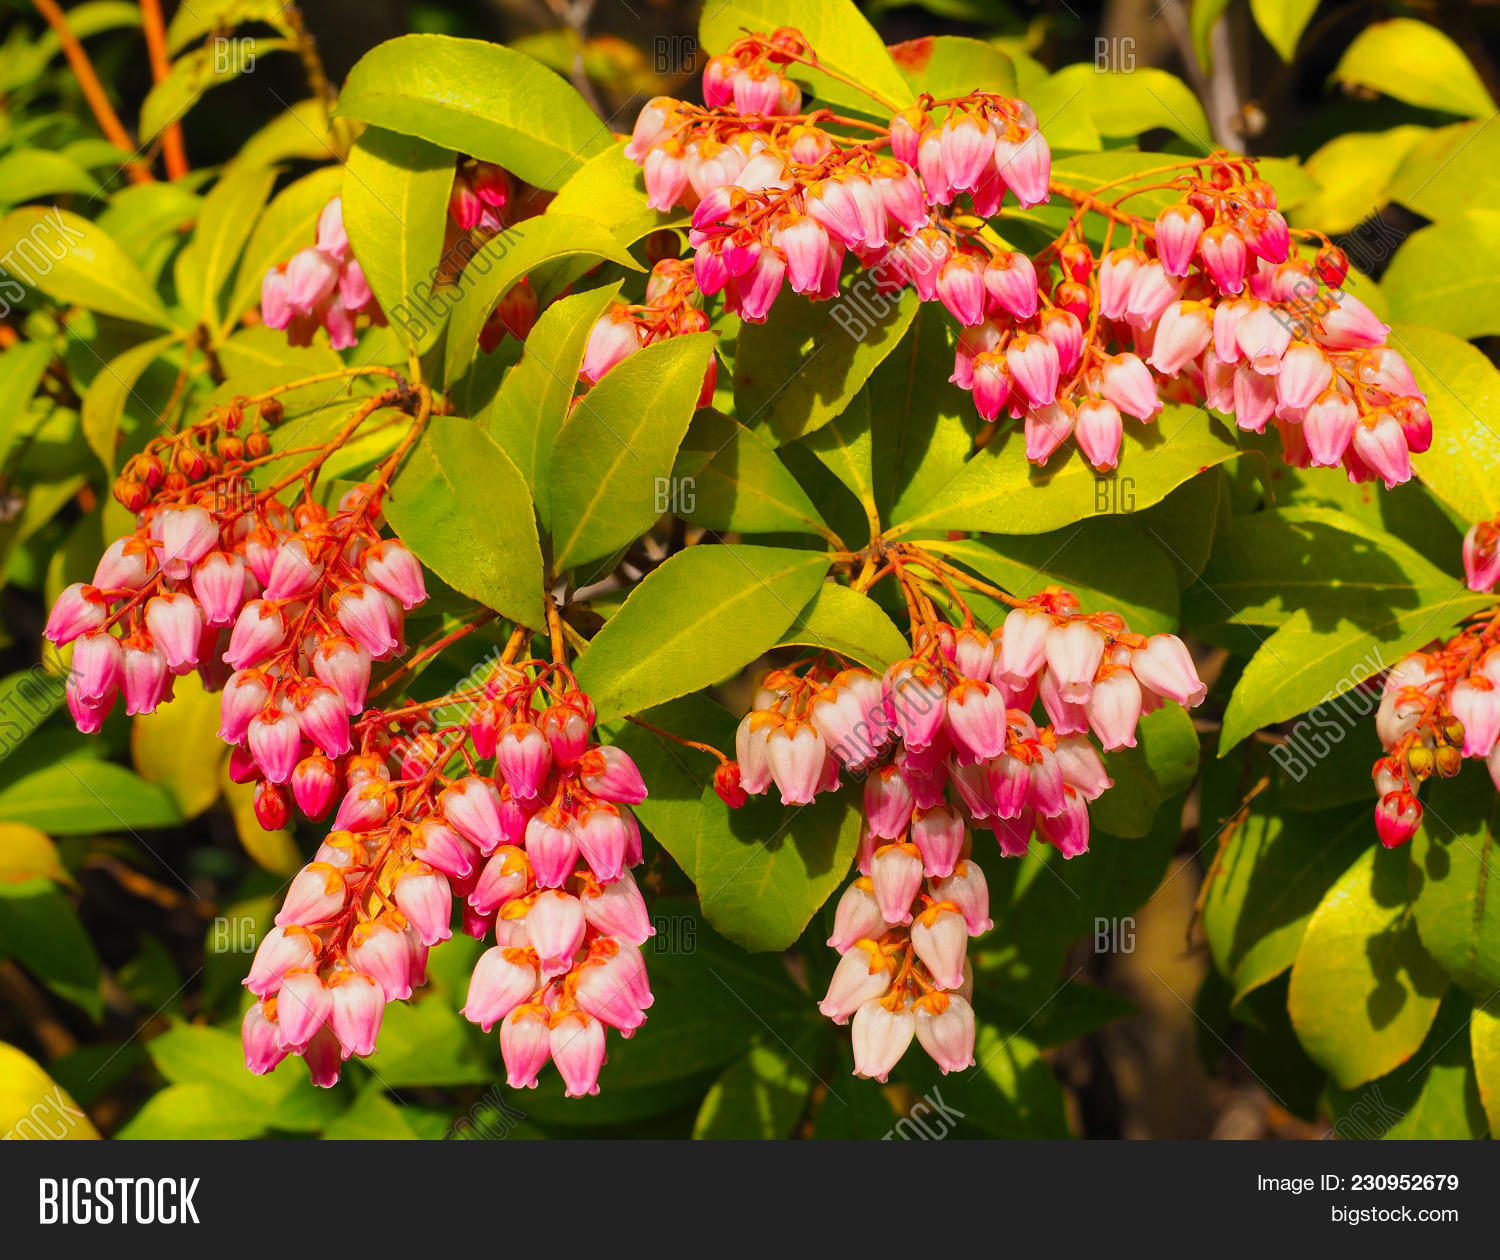 Little bright pink bell flowers on image photo bigstock little bright pink bell flowers on a pieris japonica bush vibrant pink bell flower clusters mightylinksfo